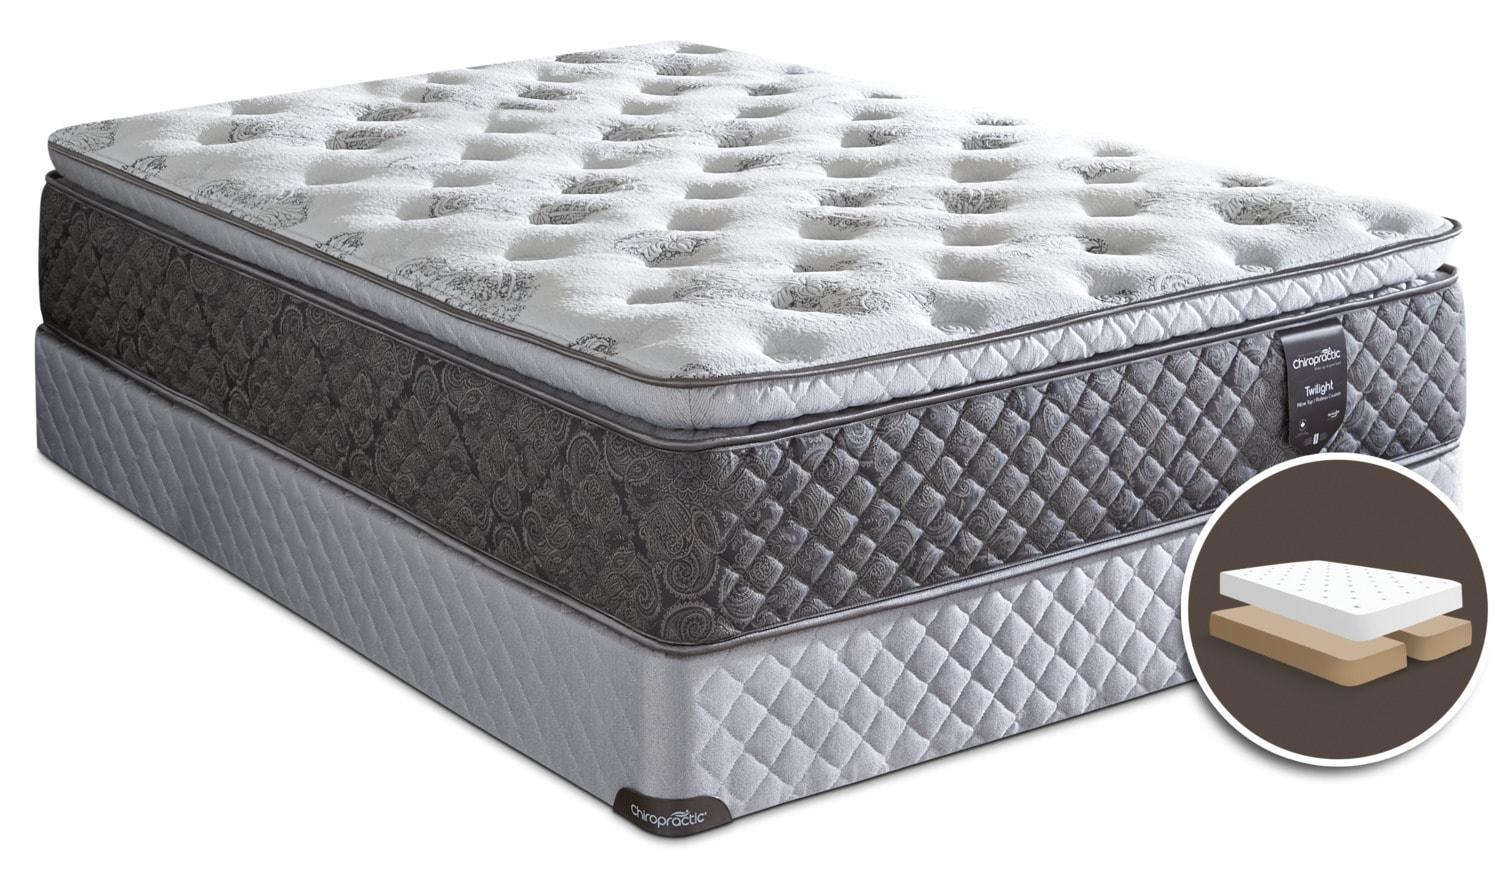 Springwall Chiropractic® Twilight Pillow-Top Luxury Firm Split Queen Mattress Set